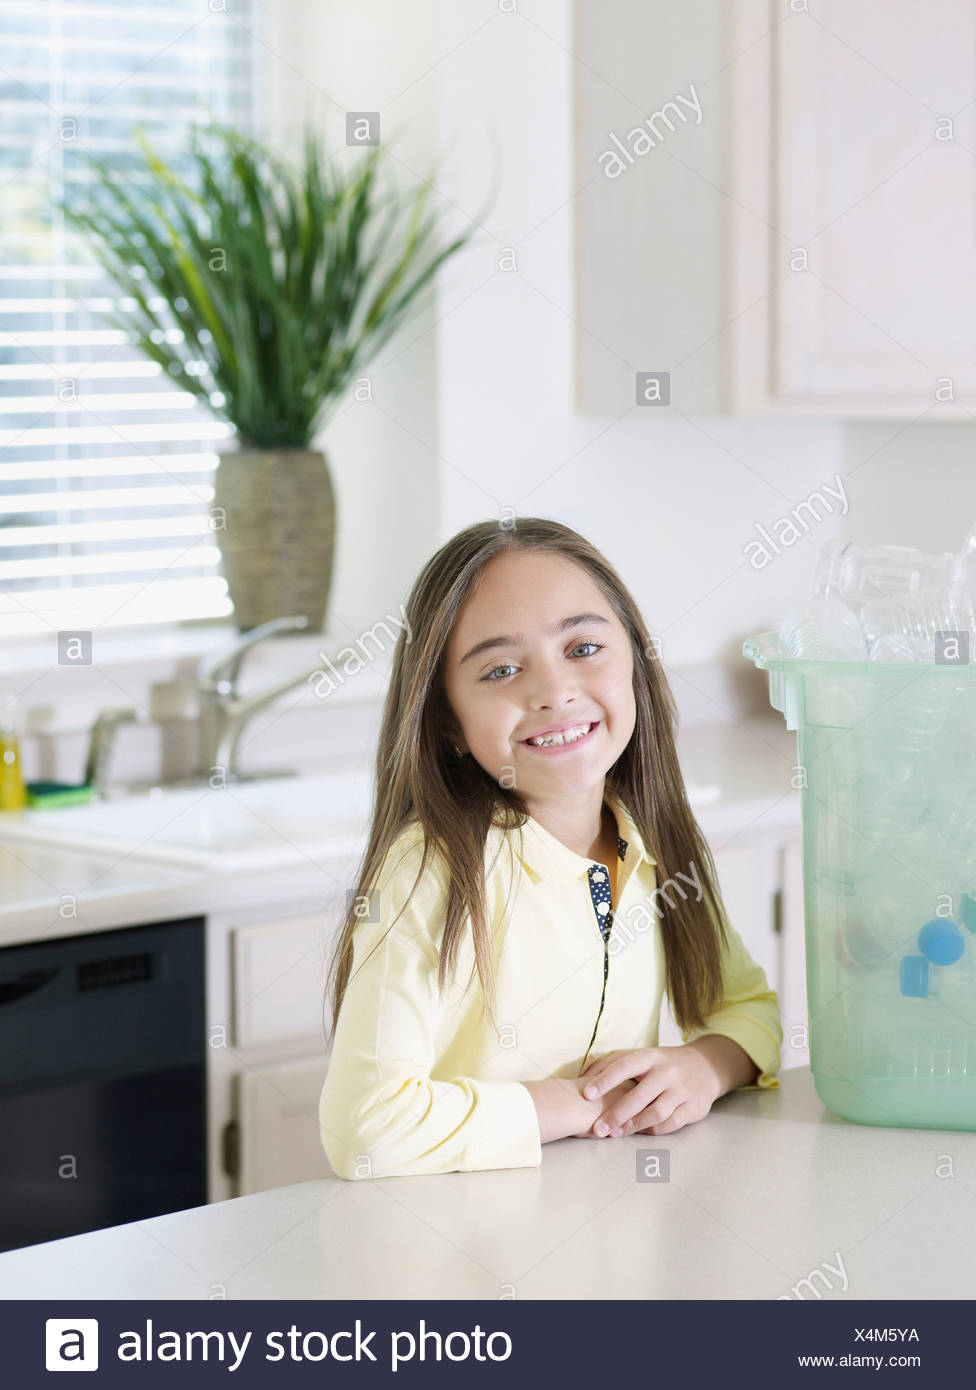 Young girl in kitchen with recyclable materials and bin smiling - Stock Image